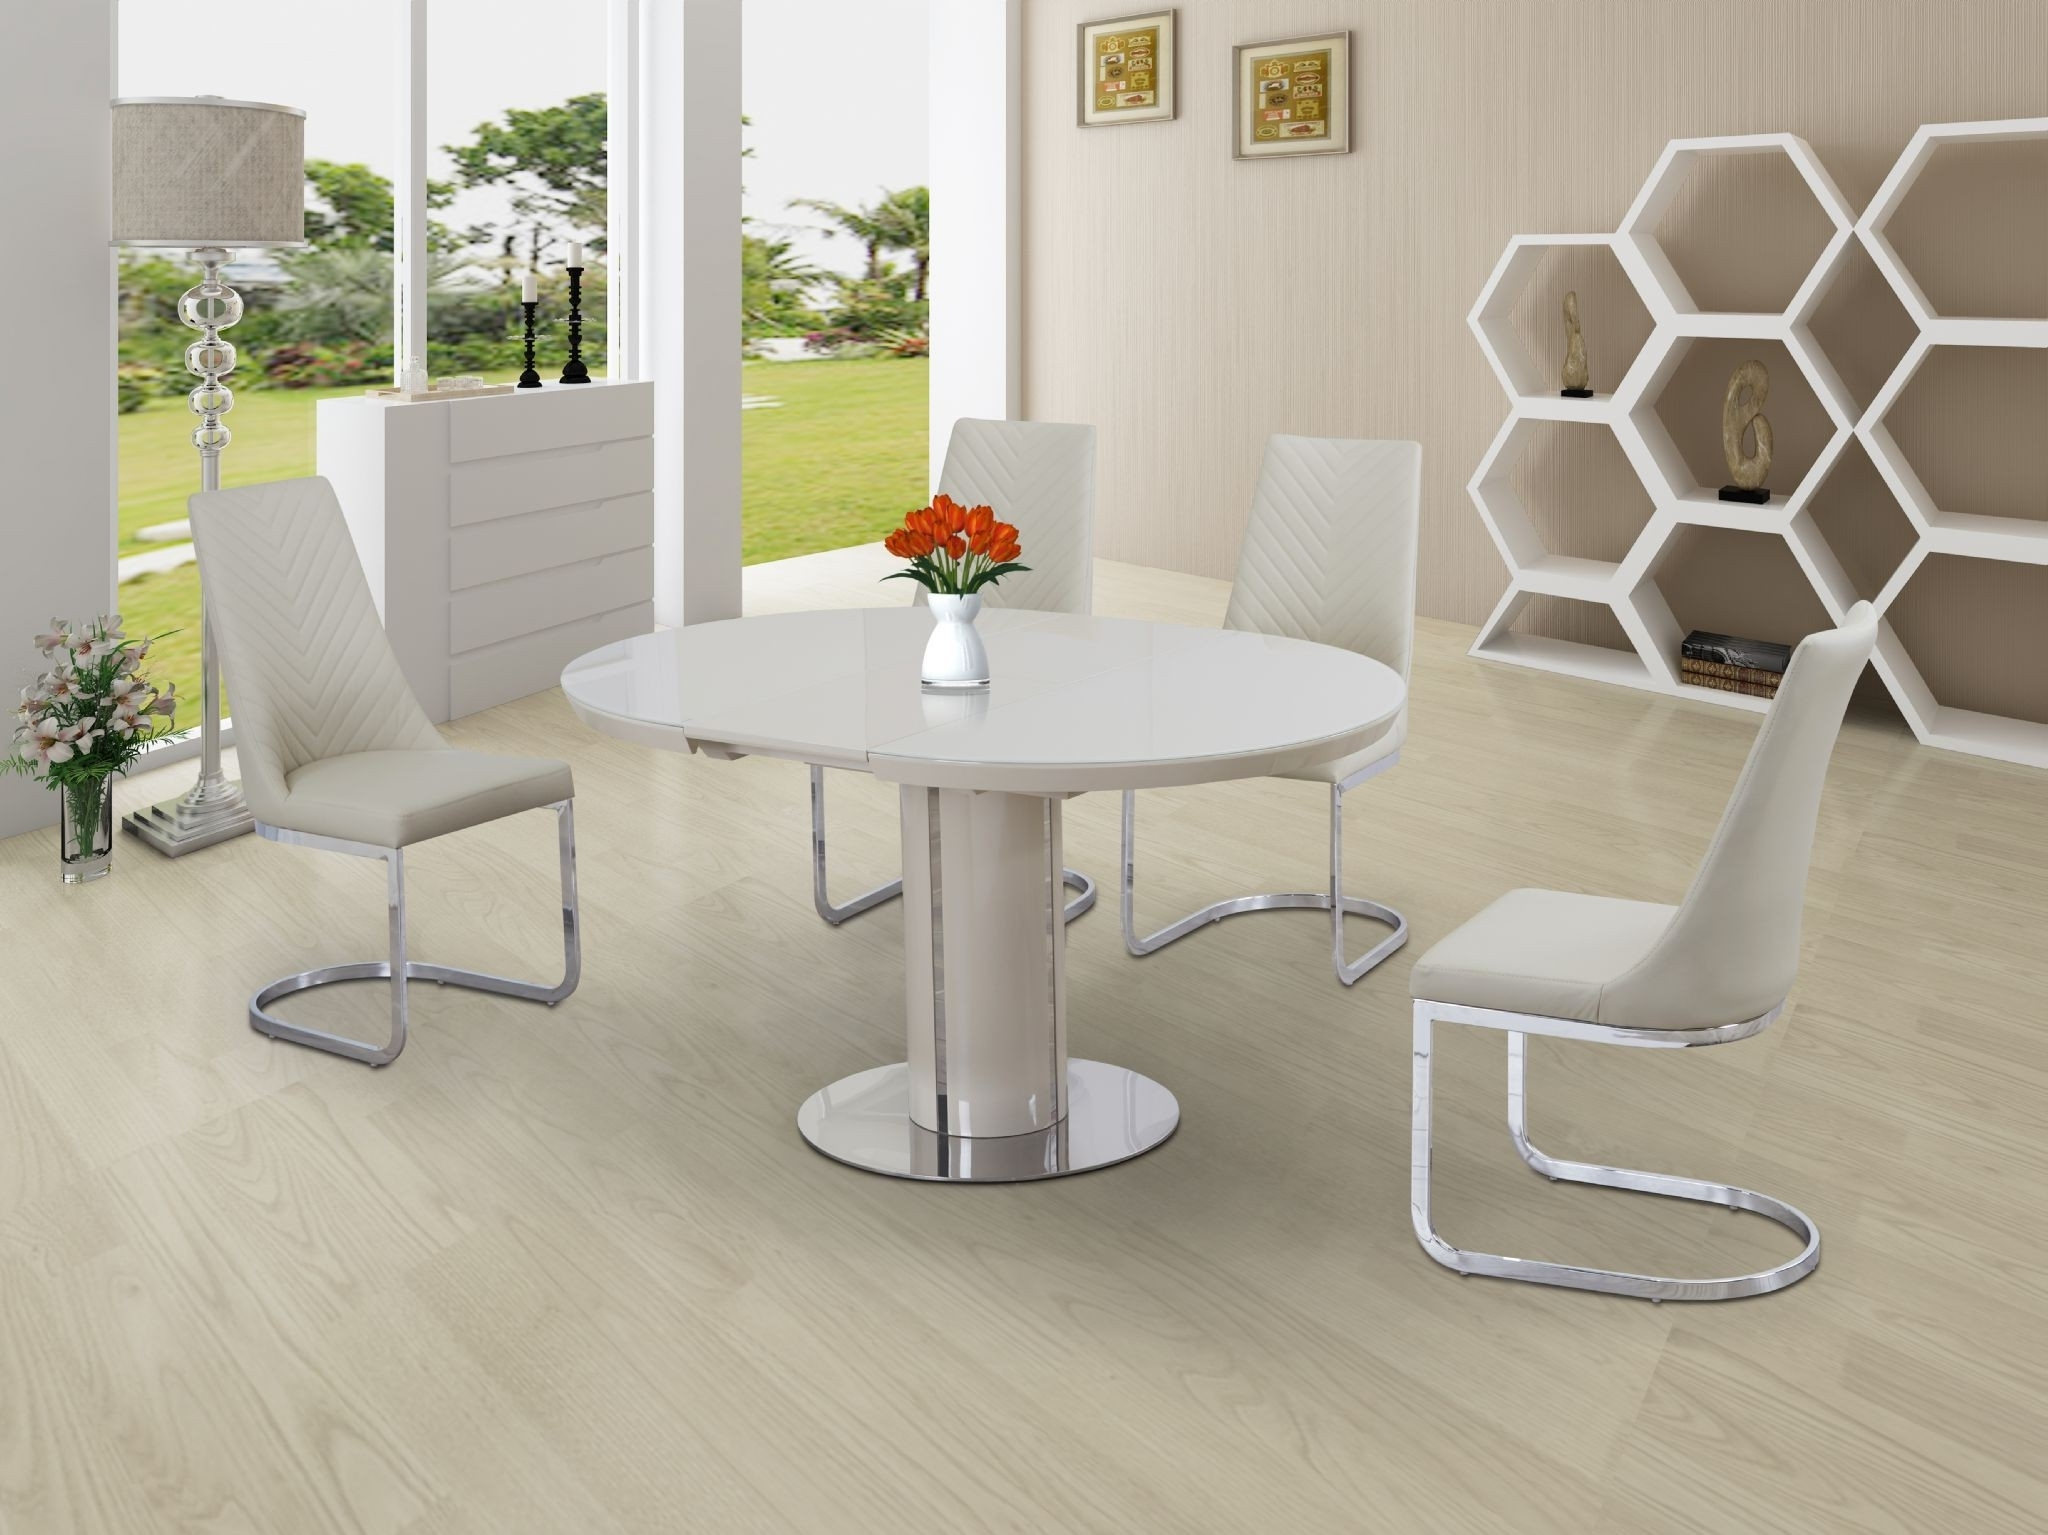 Best And Newest Buy Annular Cream High Gloss Extending Dining Table Inside Grey Gloss Dining Tables (View 11 of 25)